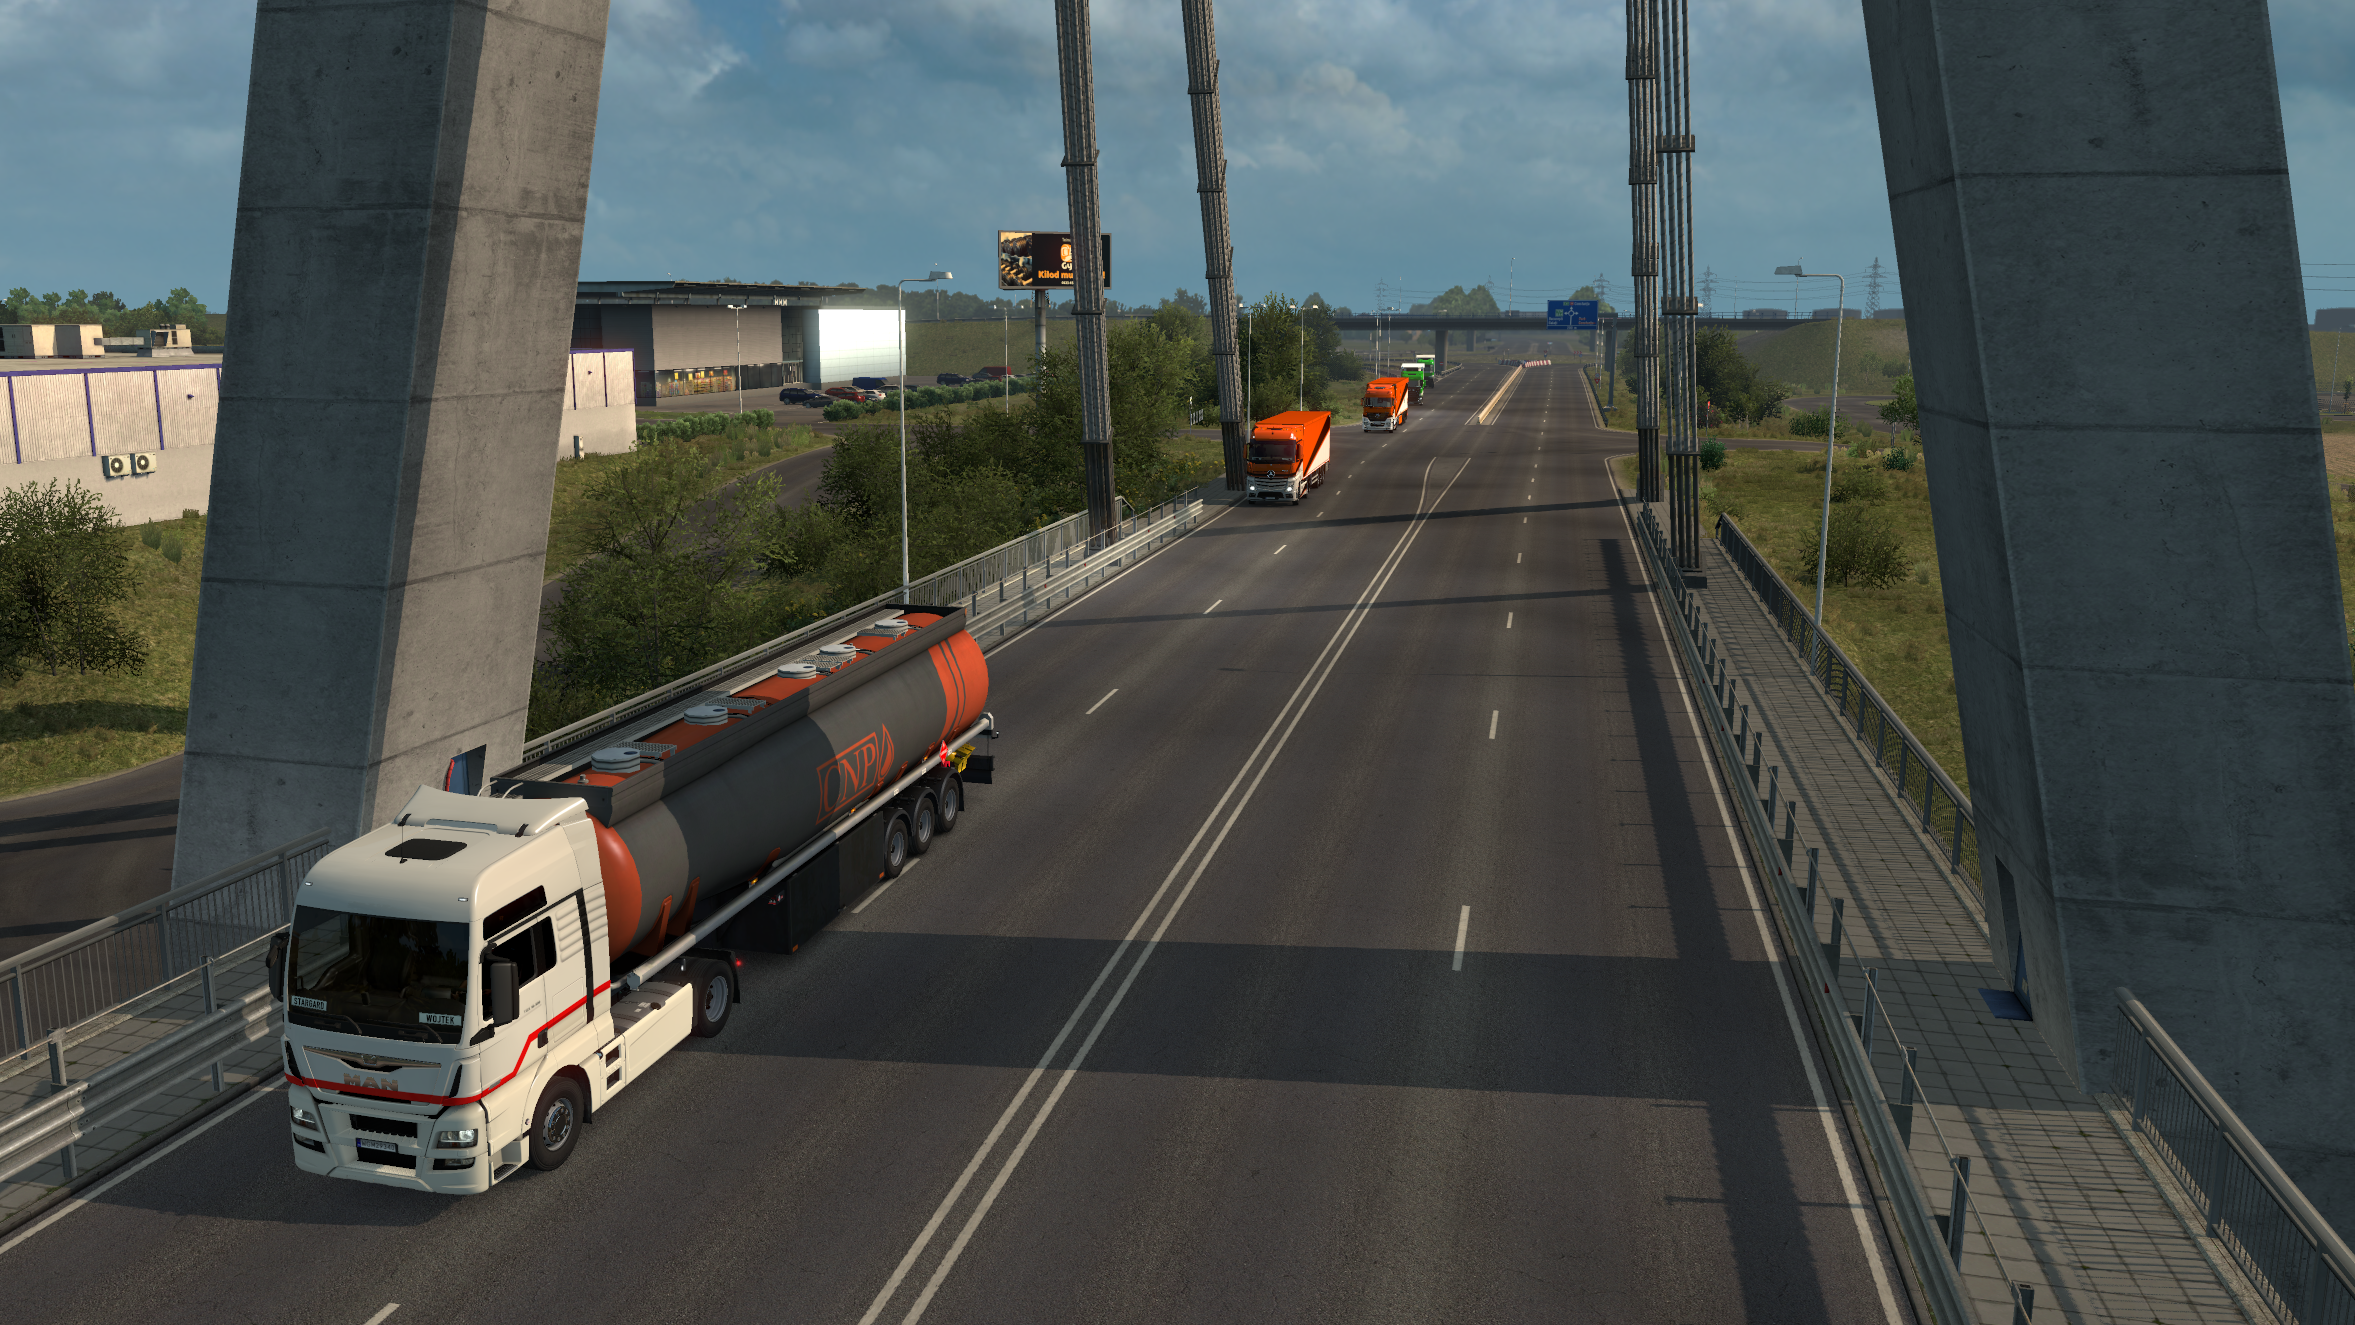 Euro-Truck-Simulator-2-Multiplayer-23_05_2020-20_09_29